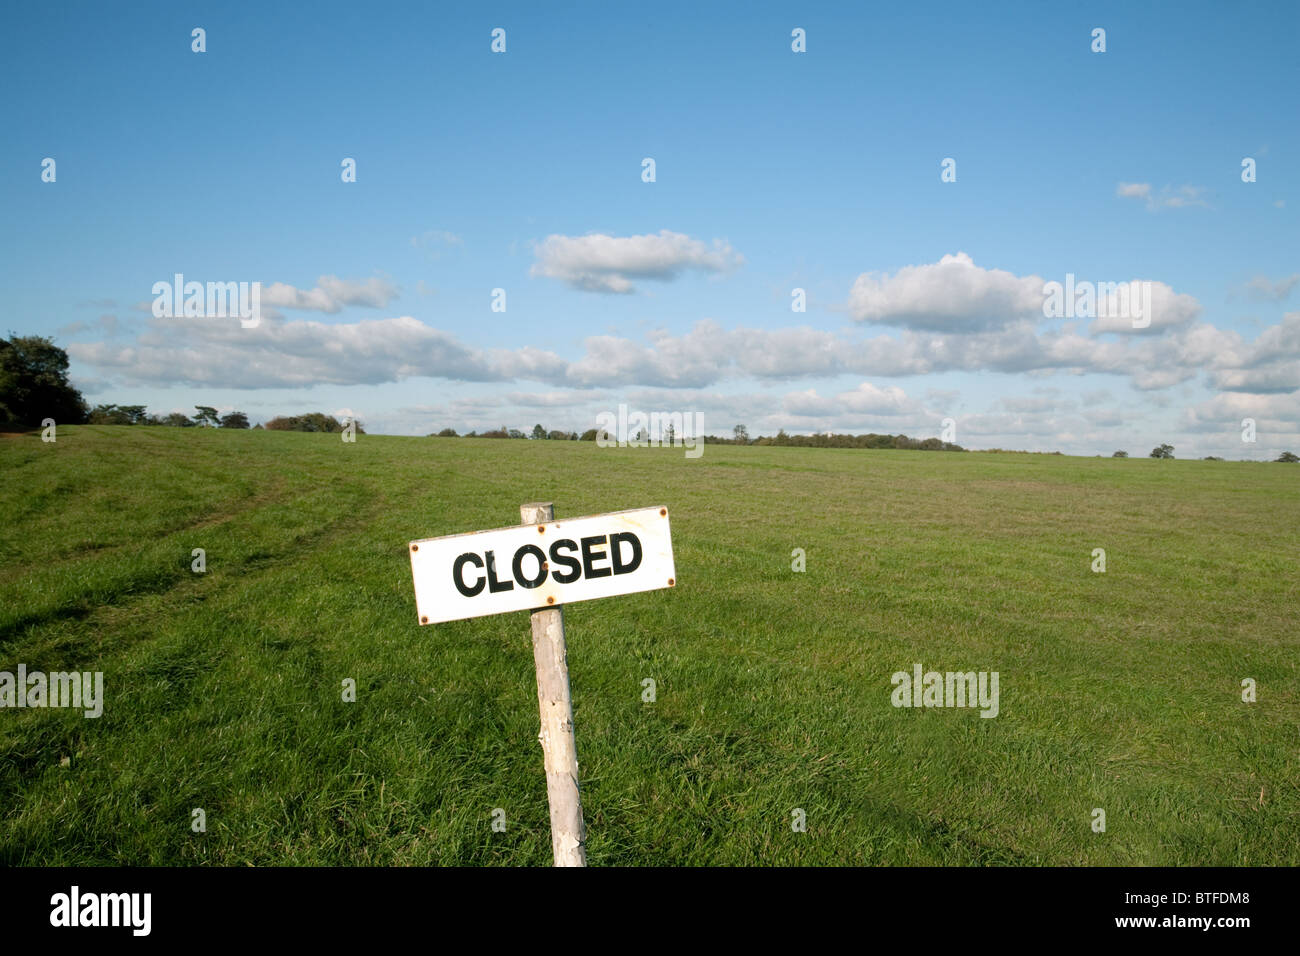 a-rather-incongruous-closed-sign-in-the-middle-of-a-field-newmarket-BTFDM8.jpg